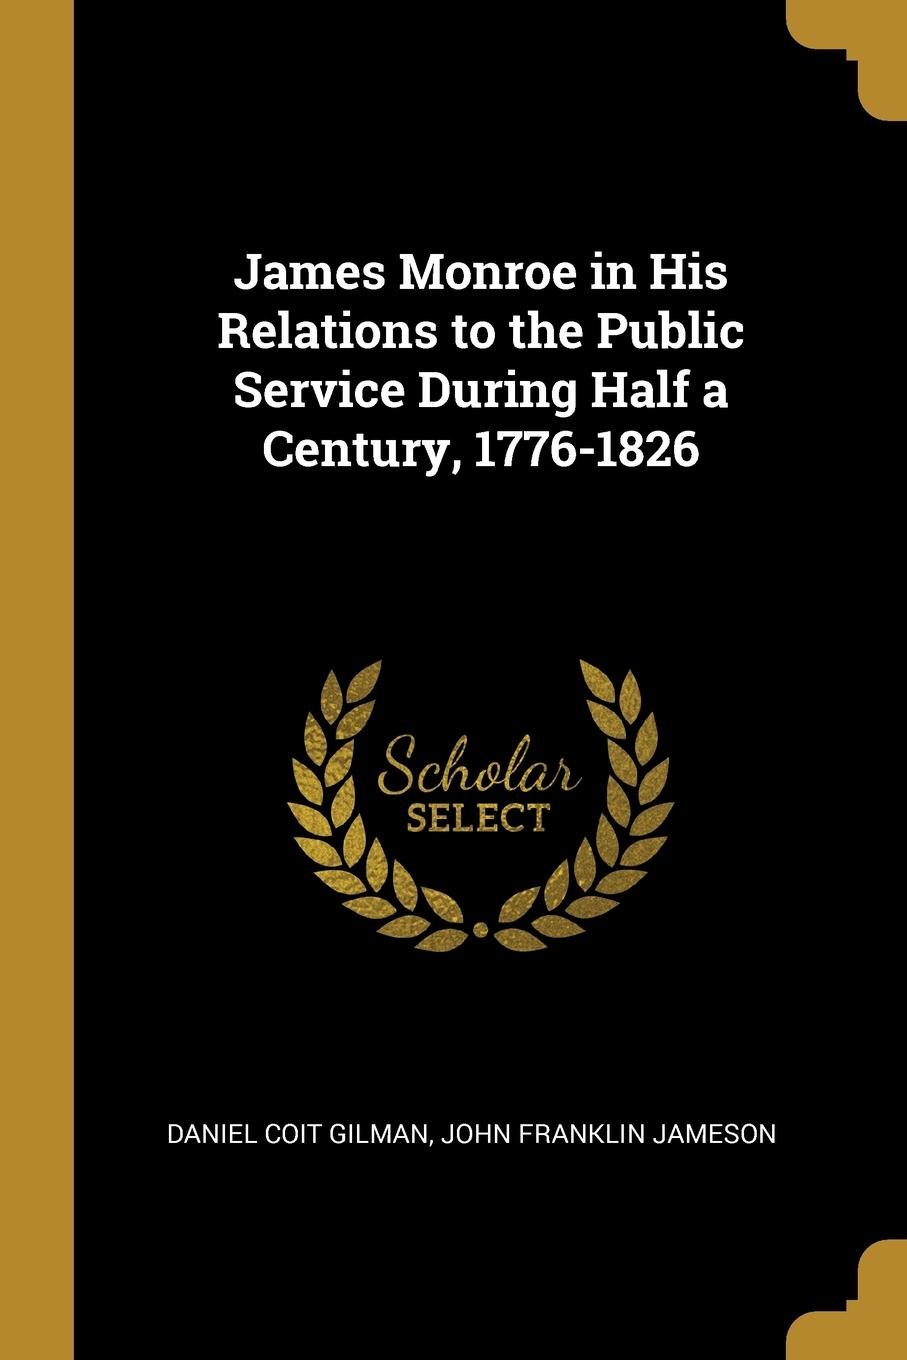 Daniel Coit Gilman, John Franklin jameson James Monroe in His Relations to the Public Service During Half a Century, 1776-1826